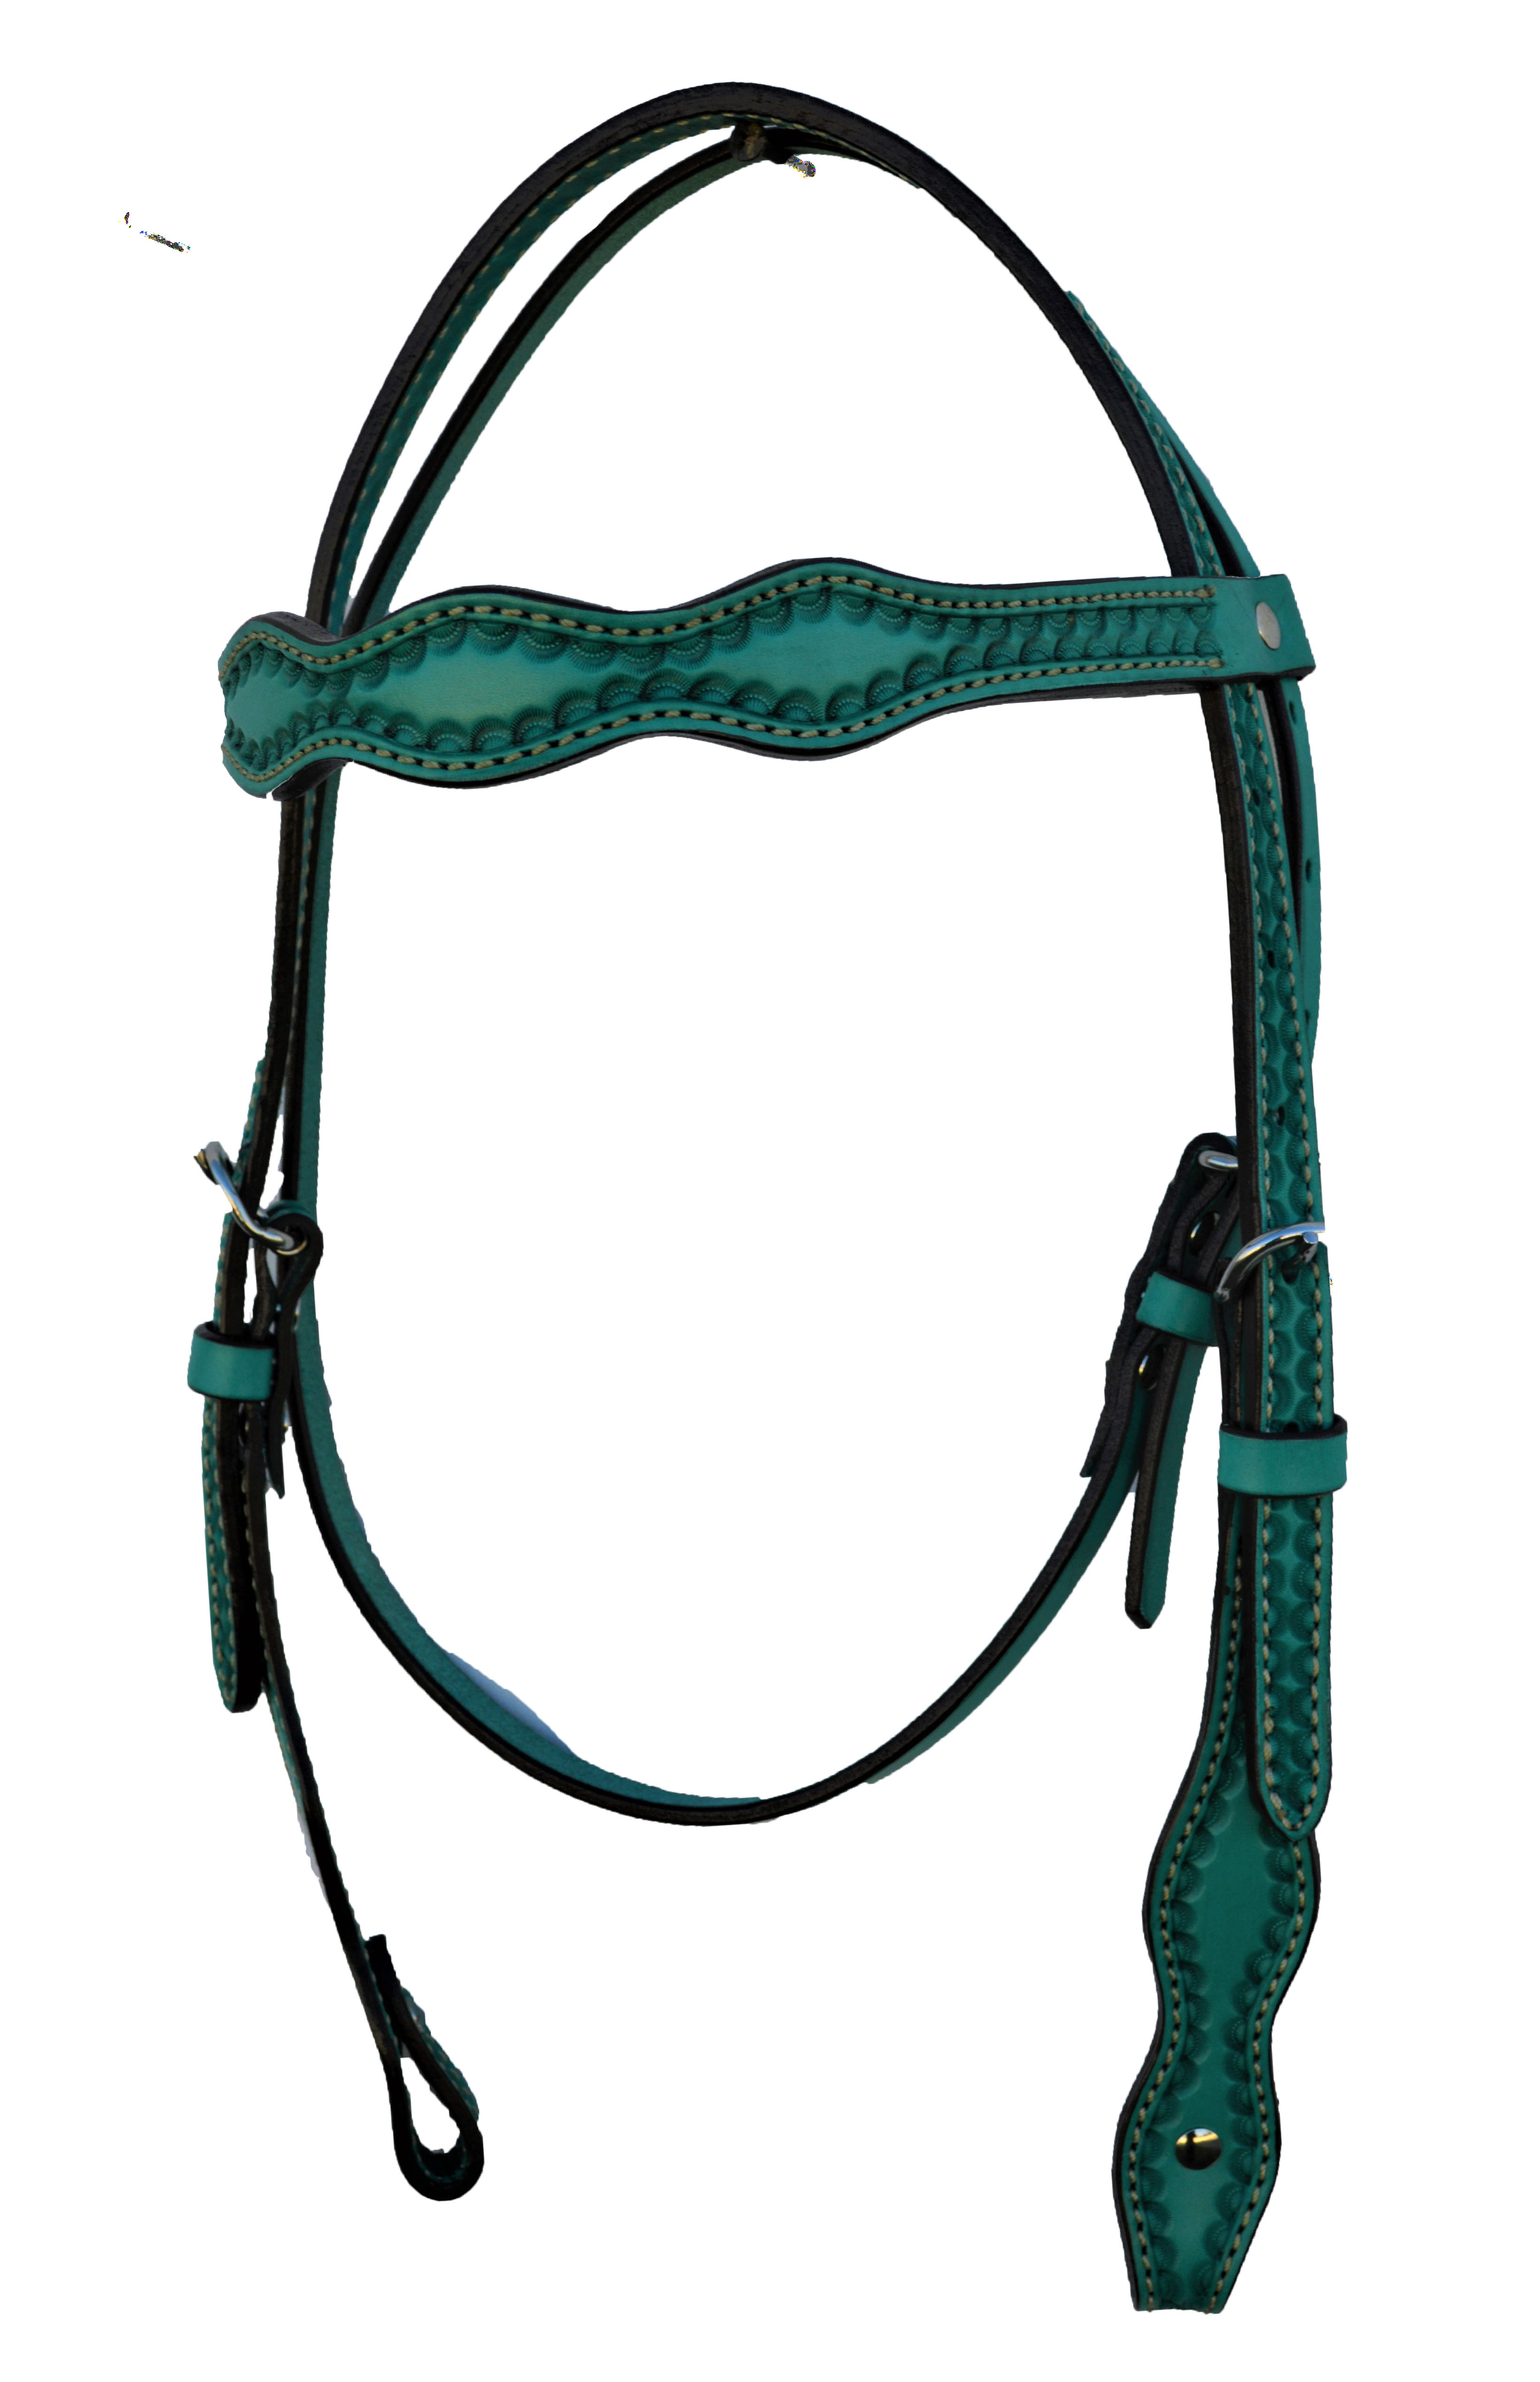 Scalloped Headstall with Turquoise Leather